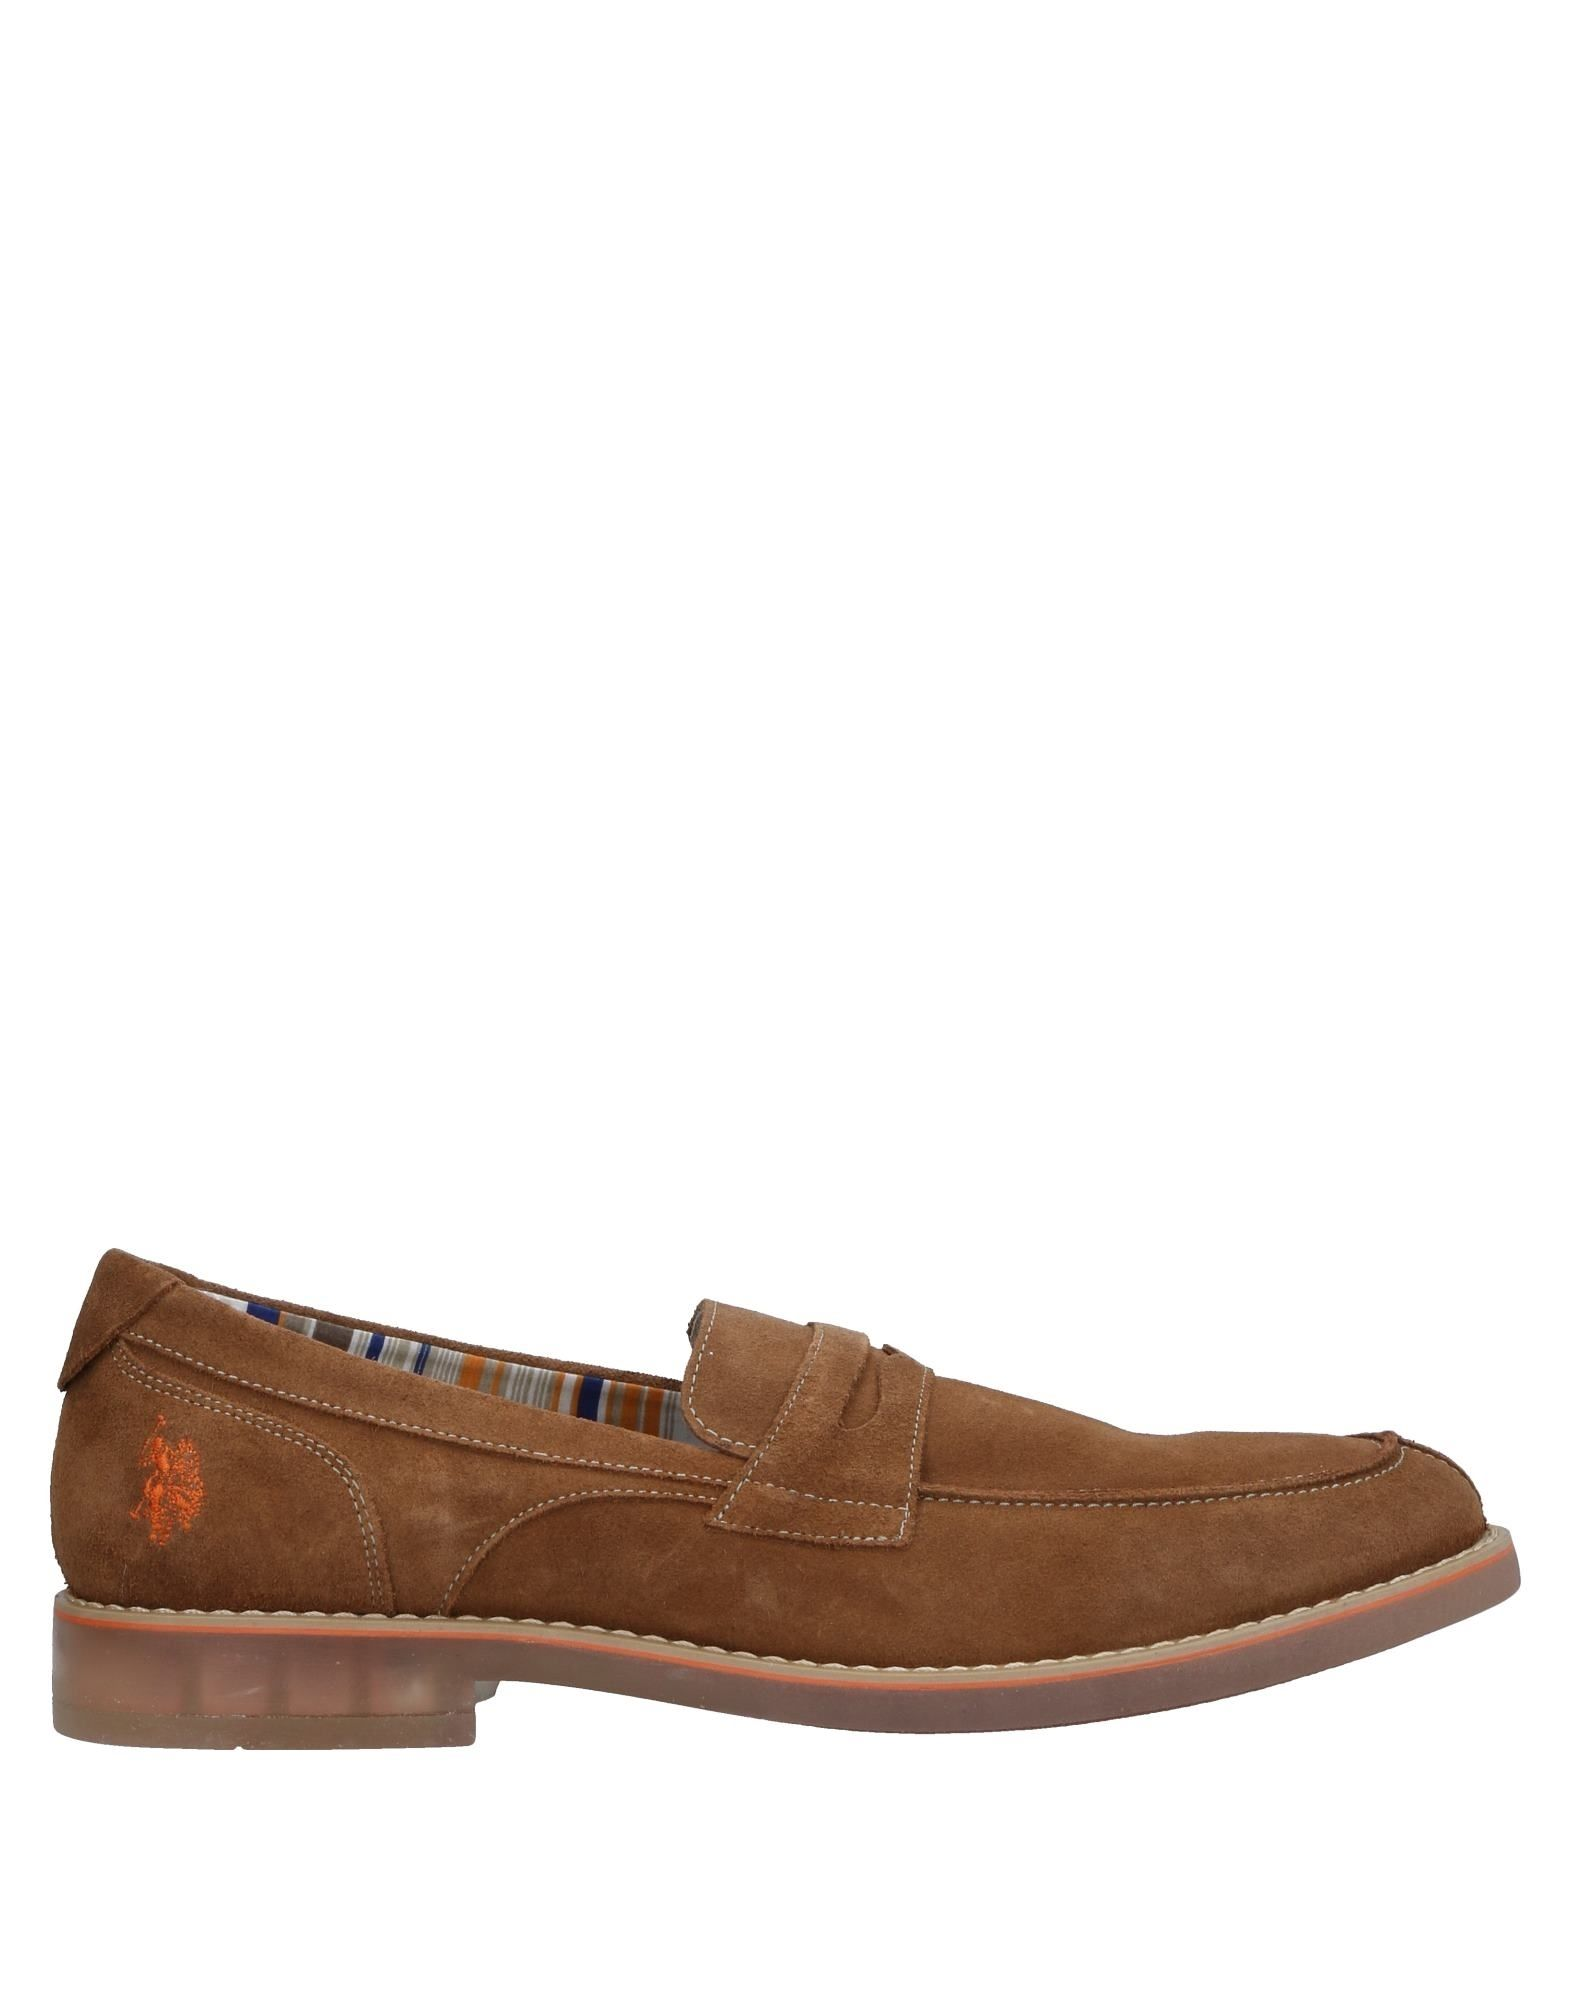 U.S.Polo Assn. Loafers - Men U.S.Polo Assn. United Loafers online on  United Assn. Kingdom - 11171628OG 84cc8b